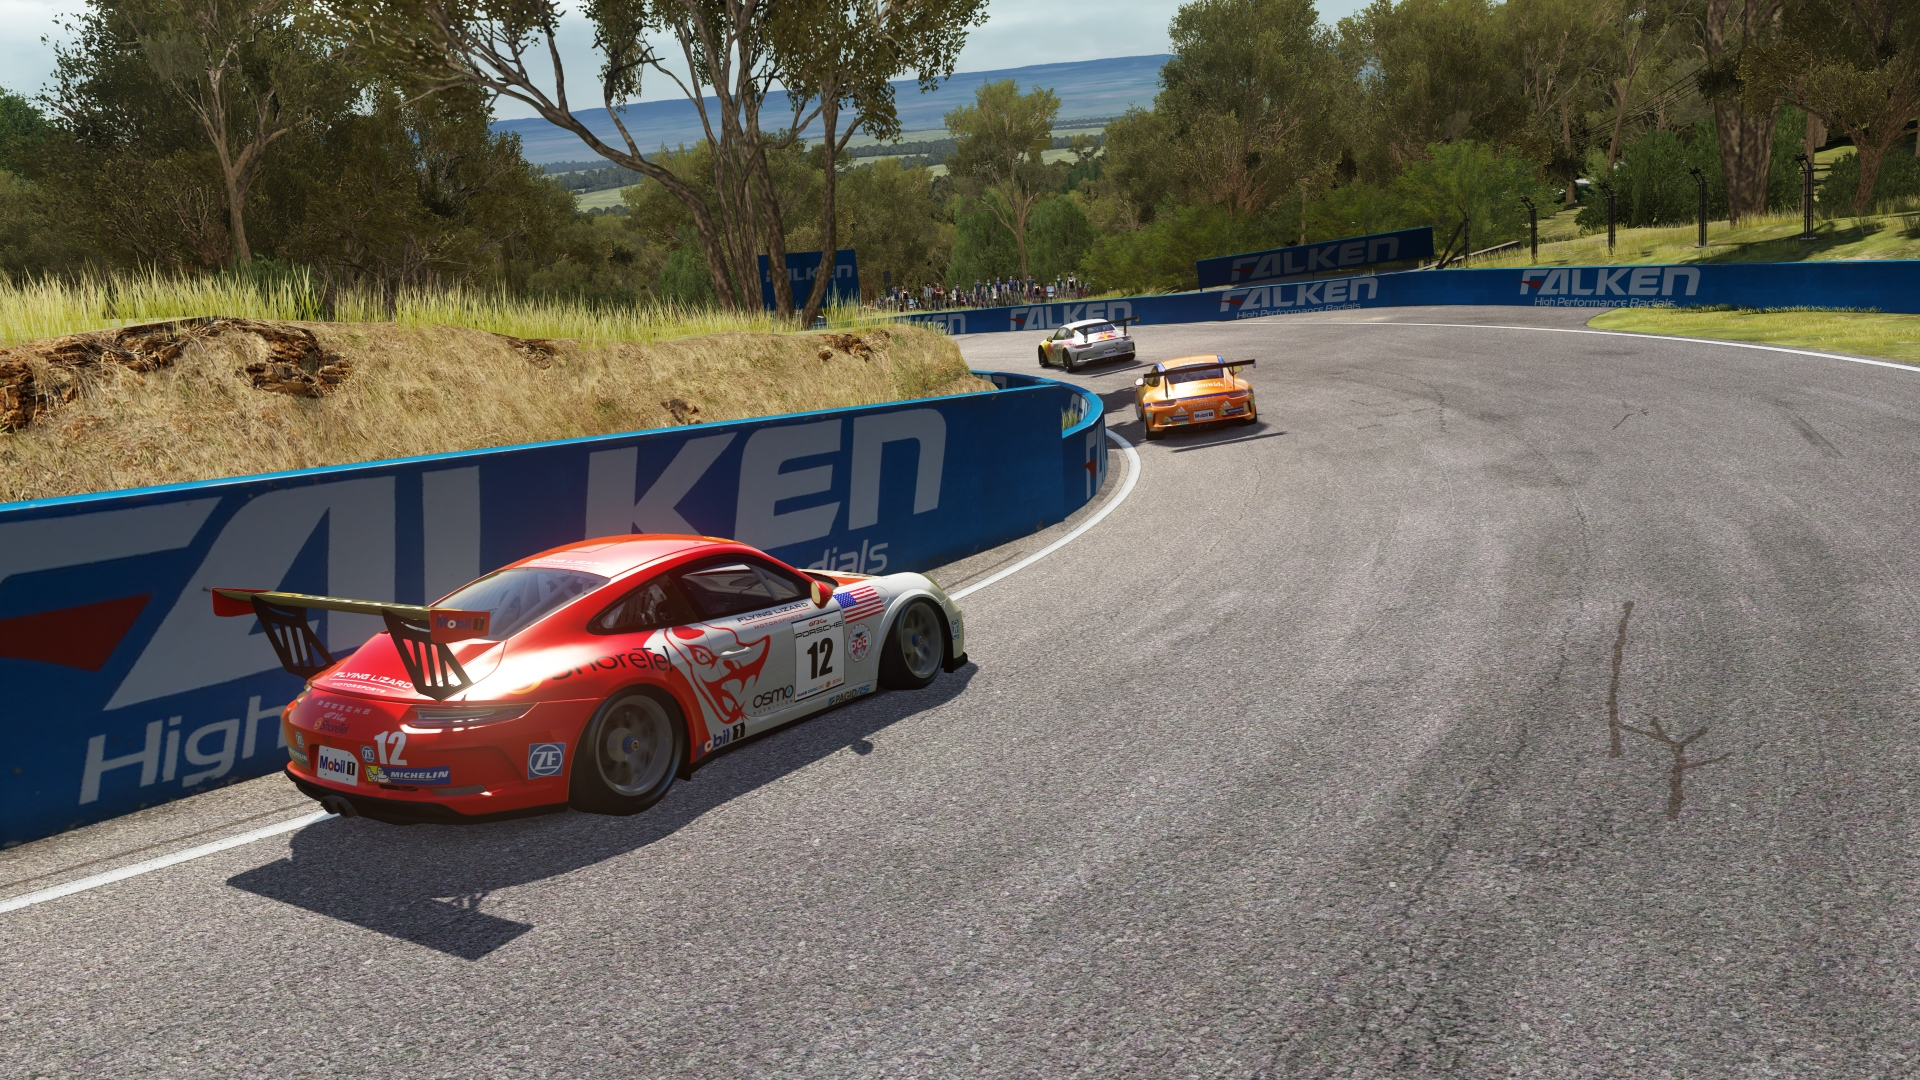 Screenshot_ks_porsche_911_gt3_cup_2017_bathurst_fm7_30-9-119-12-32-57.jpg